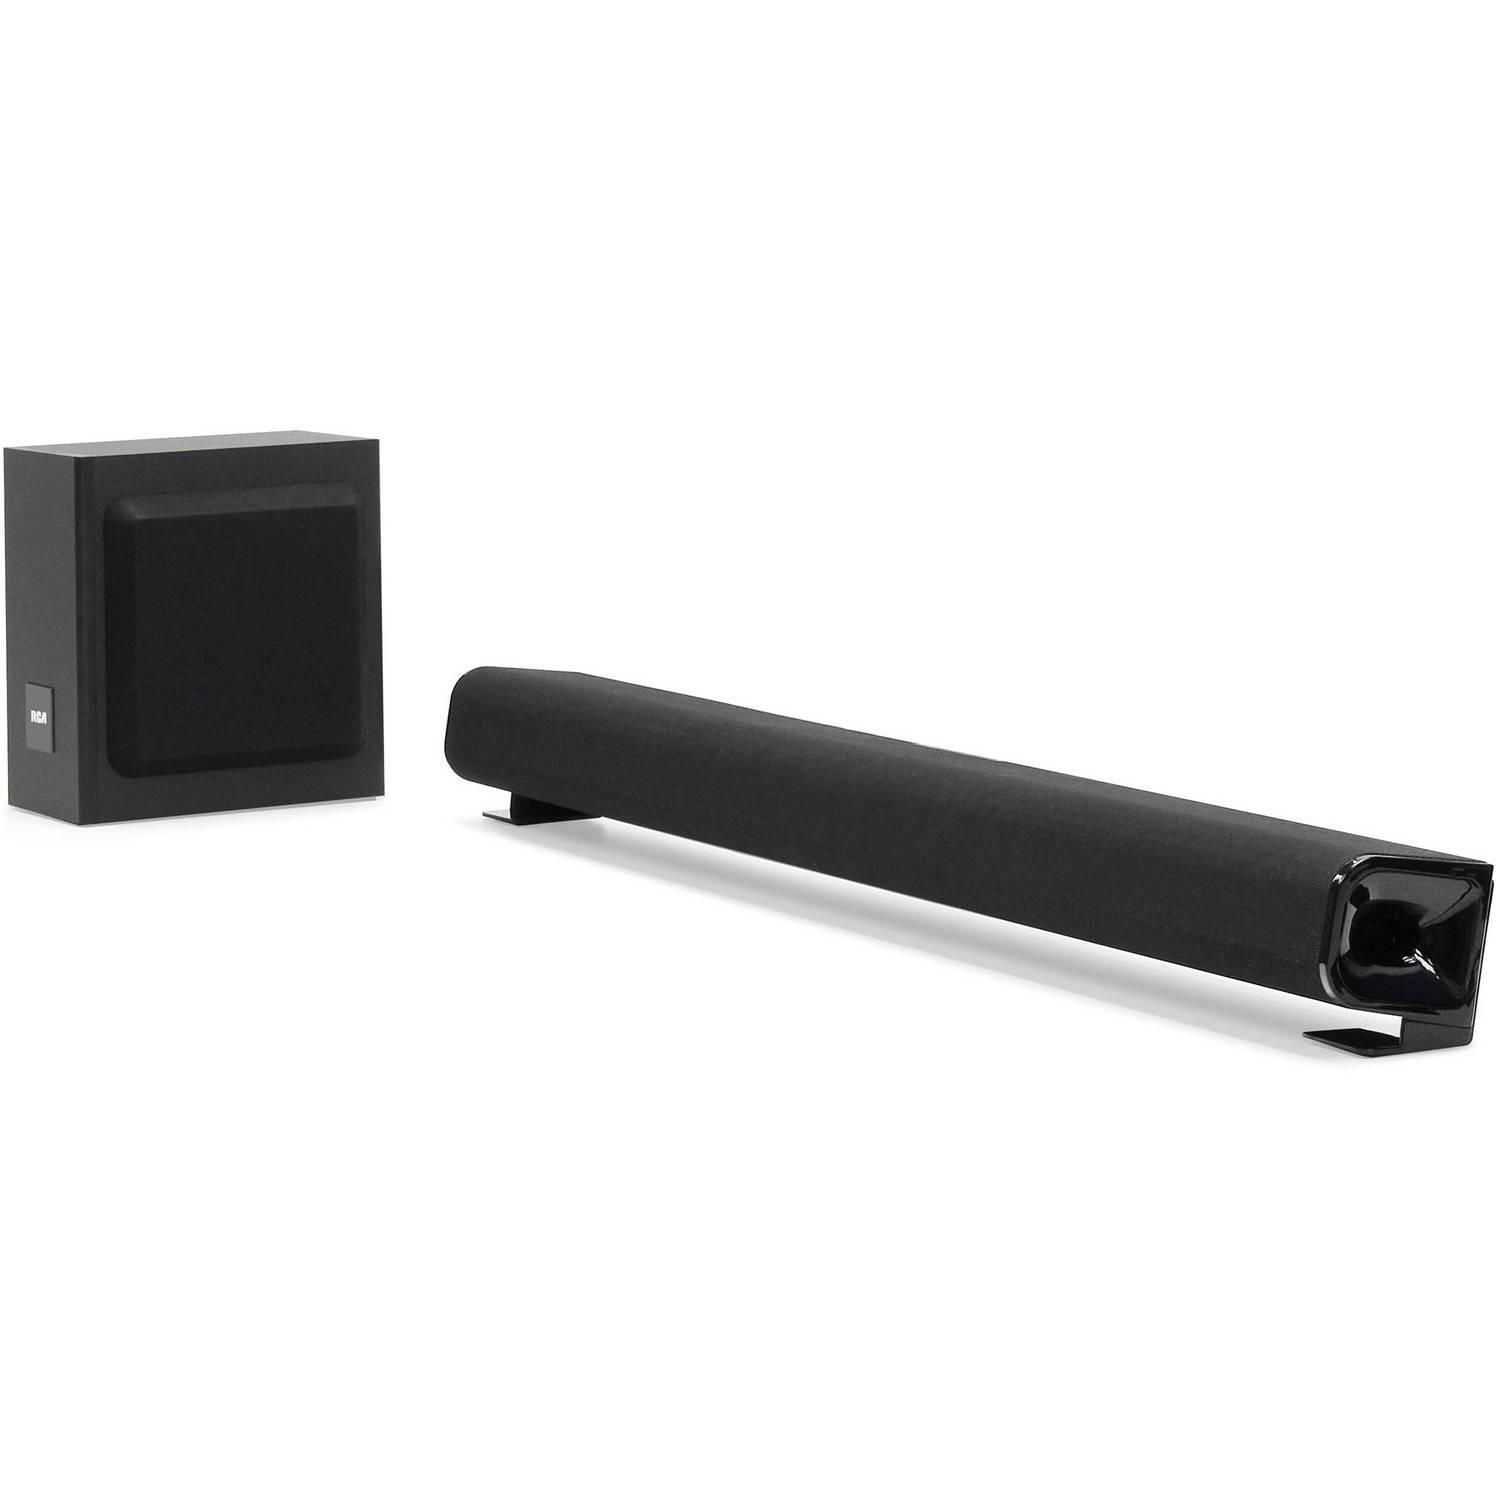 Rca 37 Bluetooth Soundbar With Subwoofer Walmart Canada Tone Control Include Out